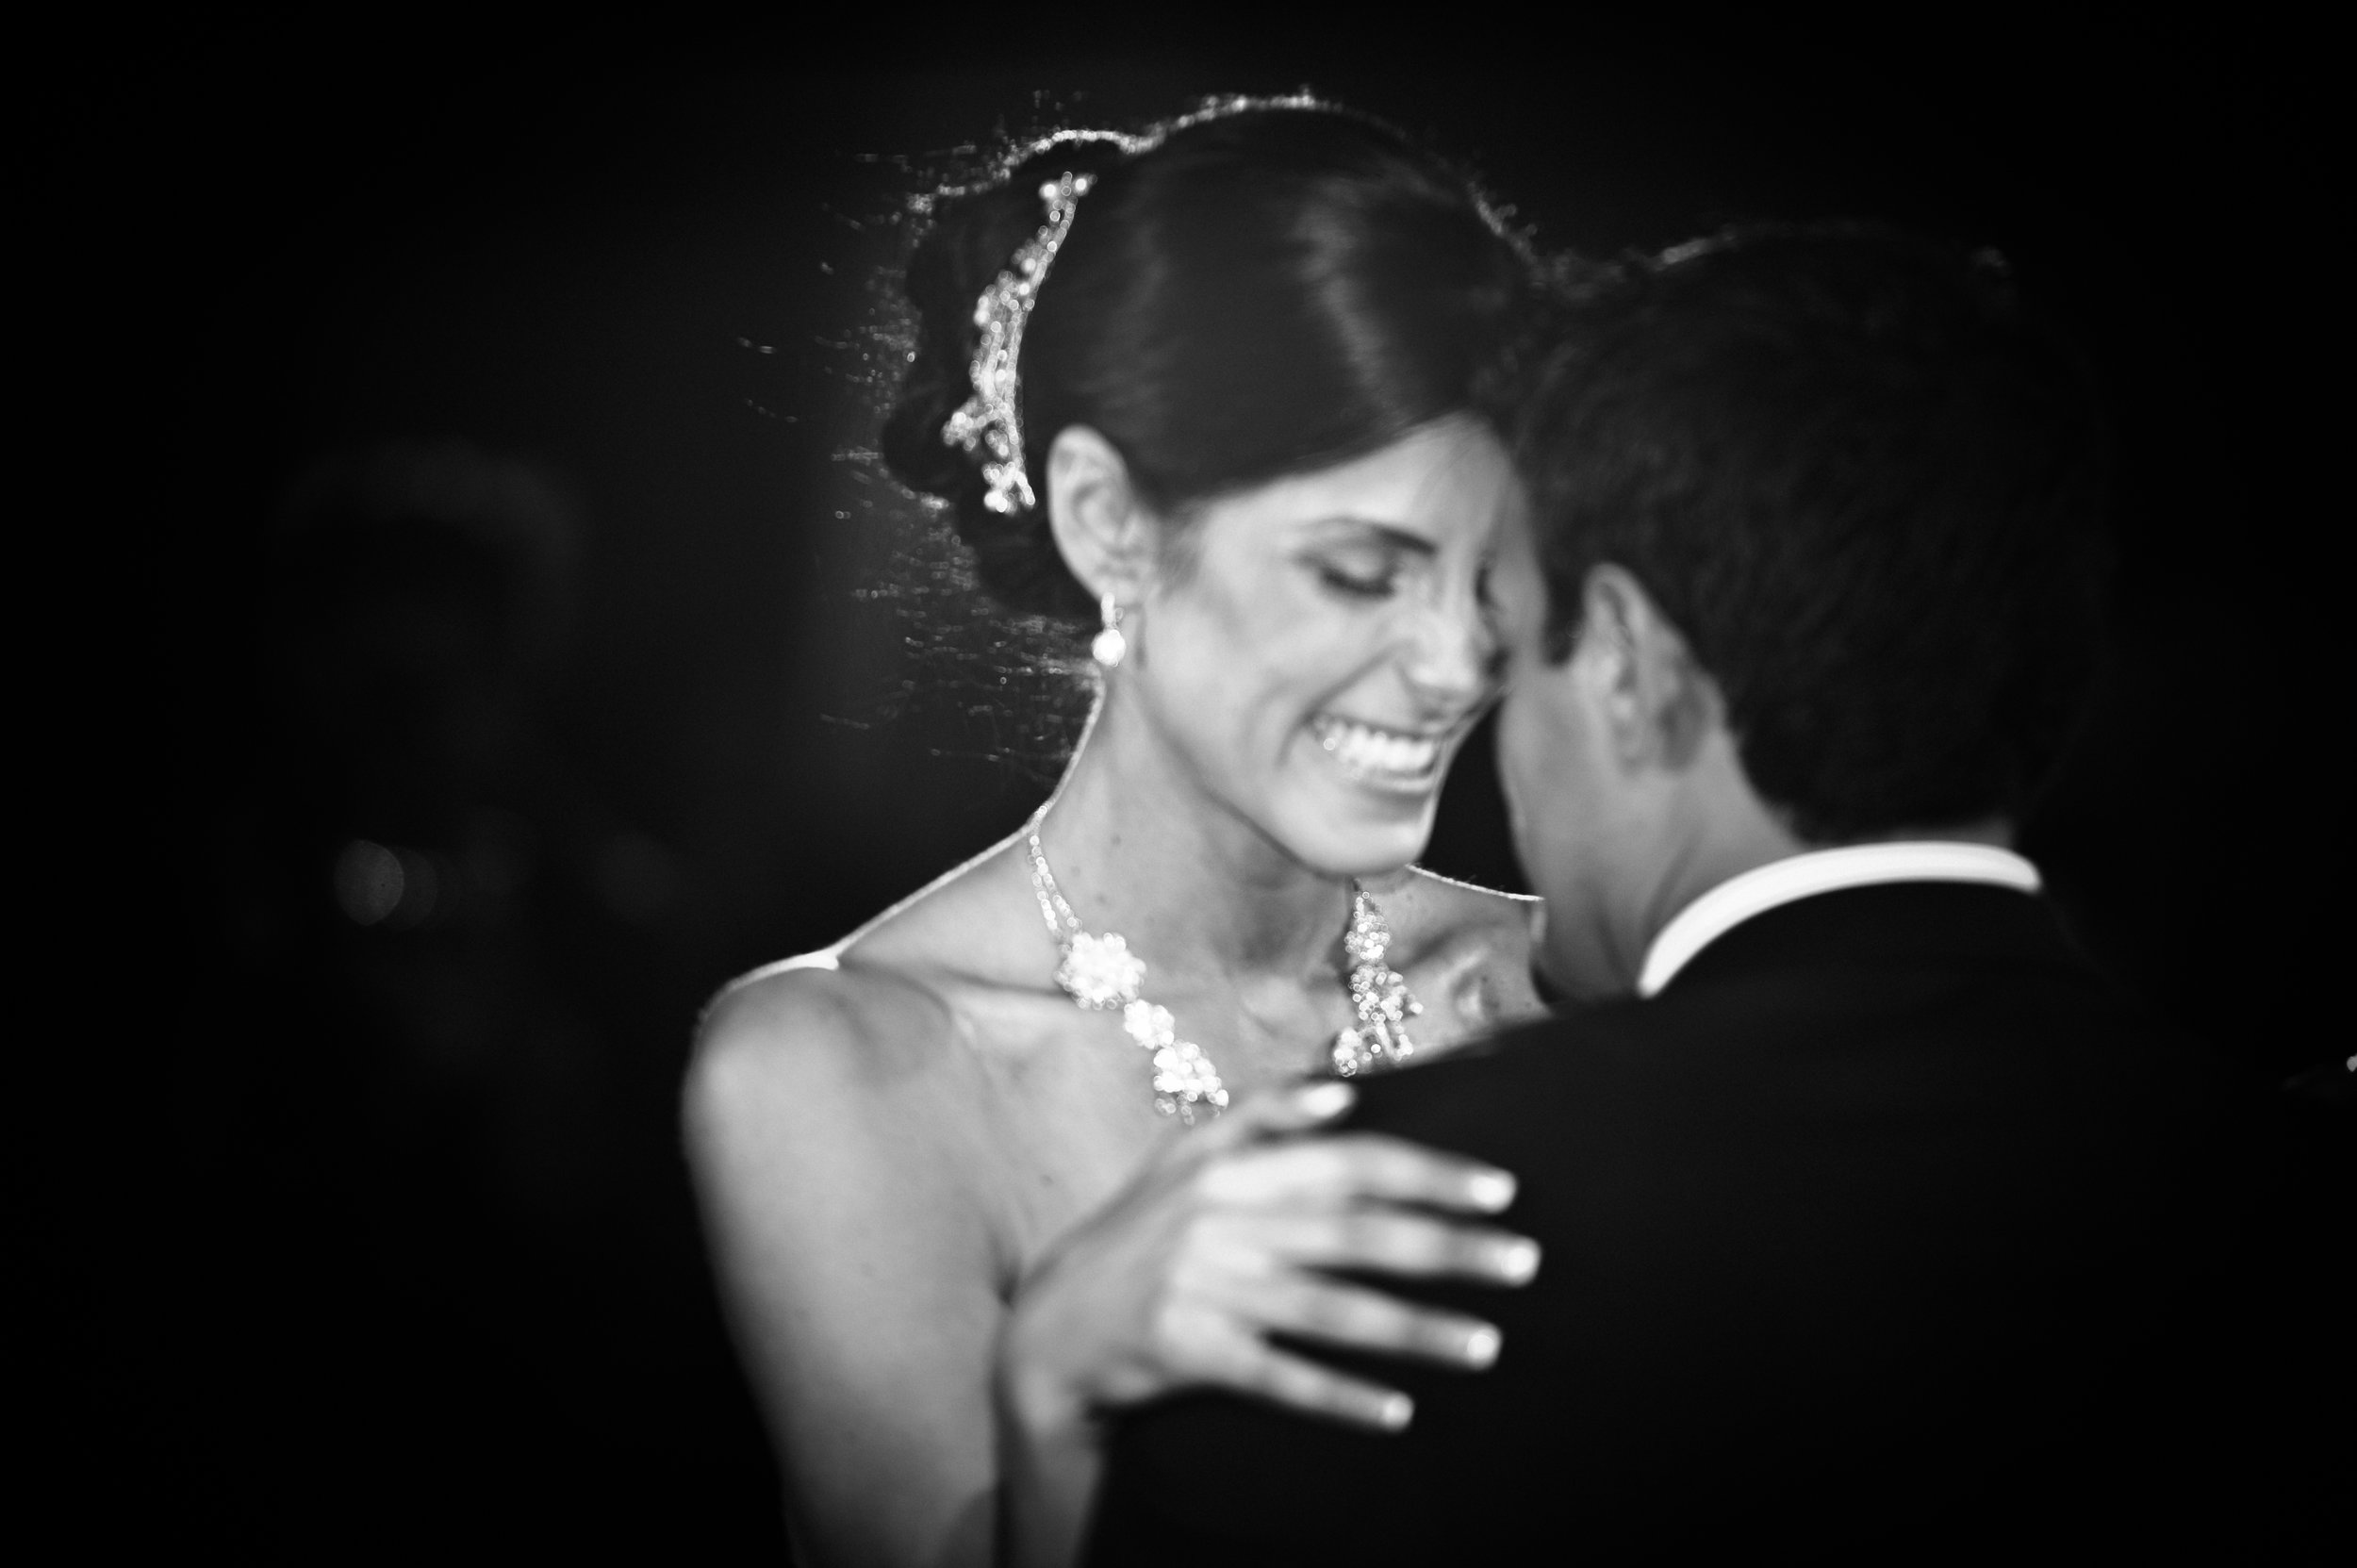 39 bride and groom first dance bride and groom on dance floor special moment with bride and groom Christine Johnson Photography Life design events.jpg